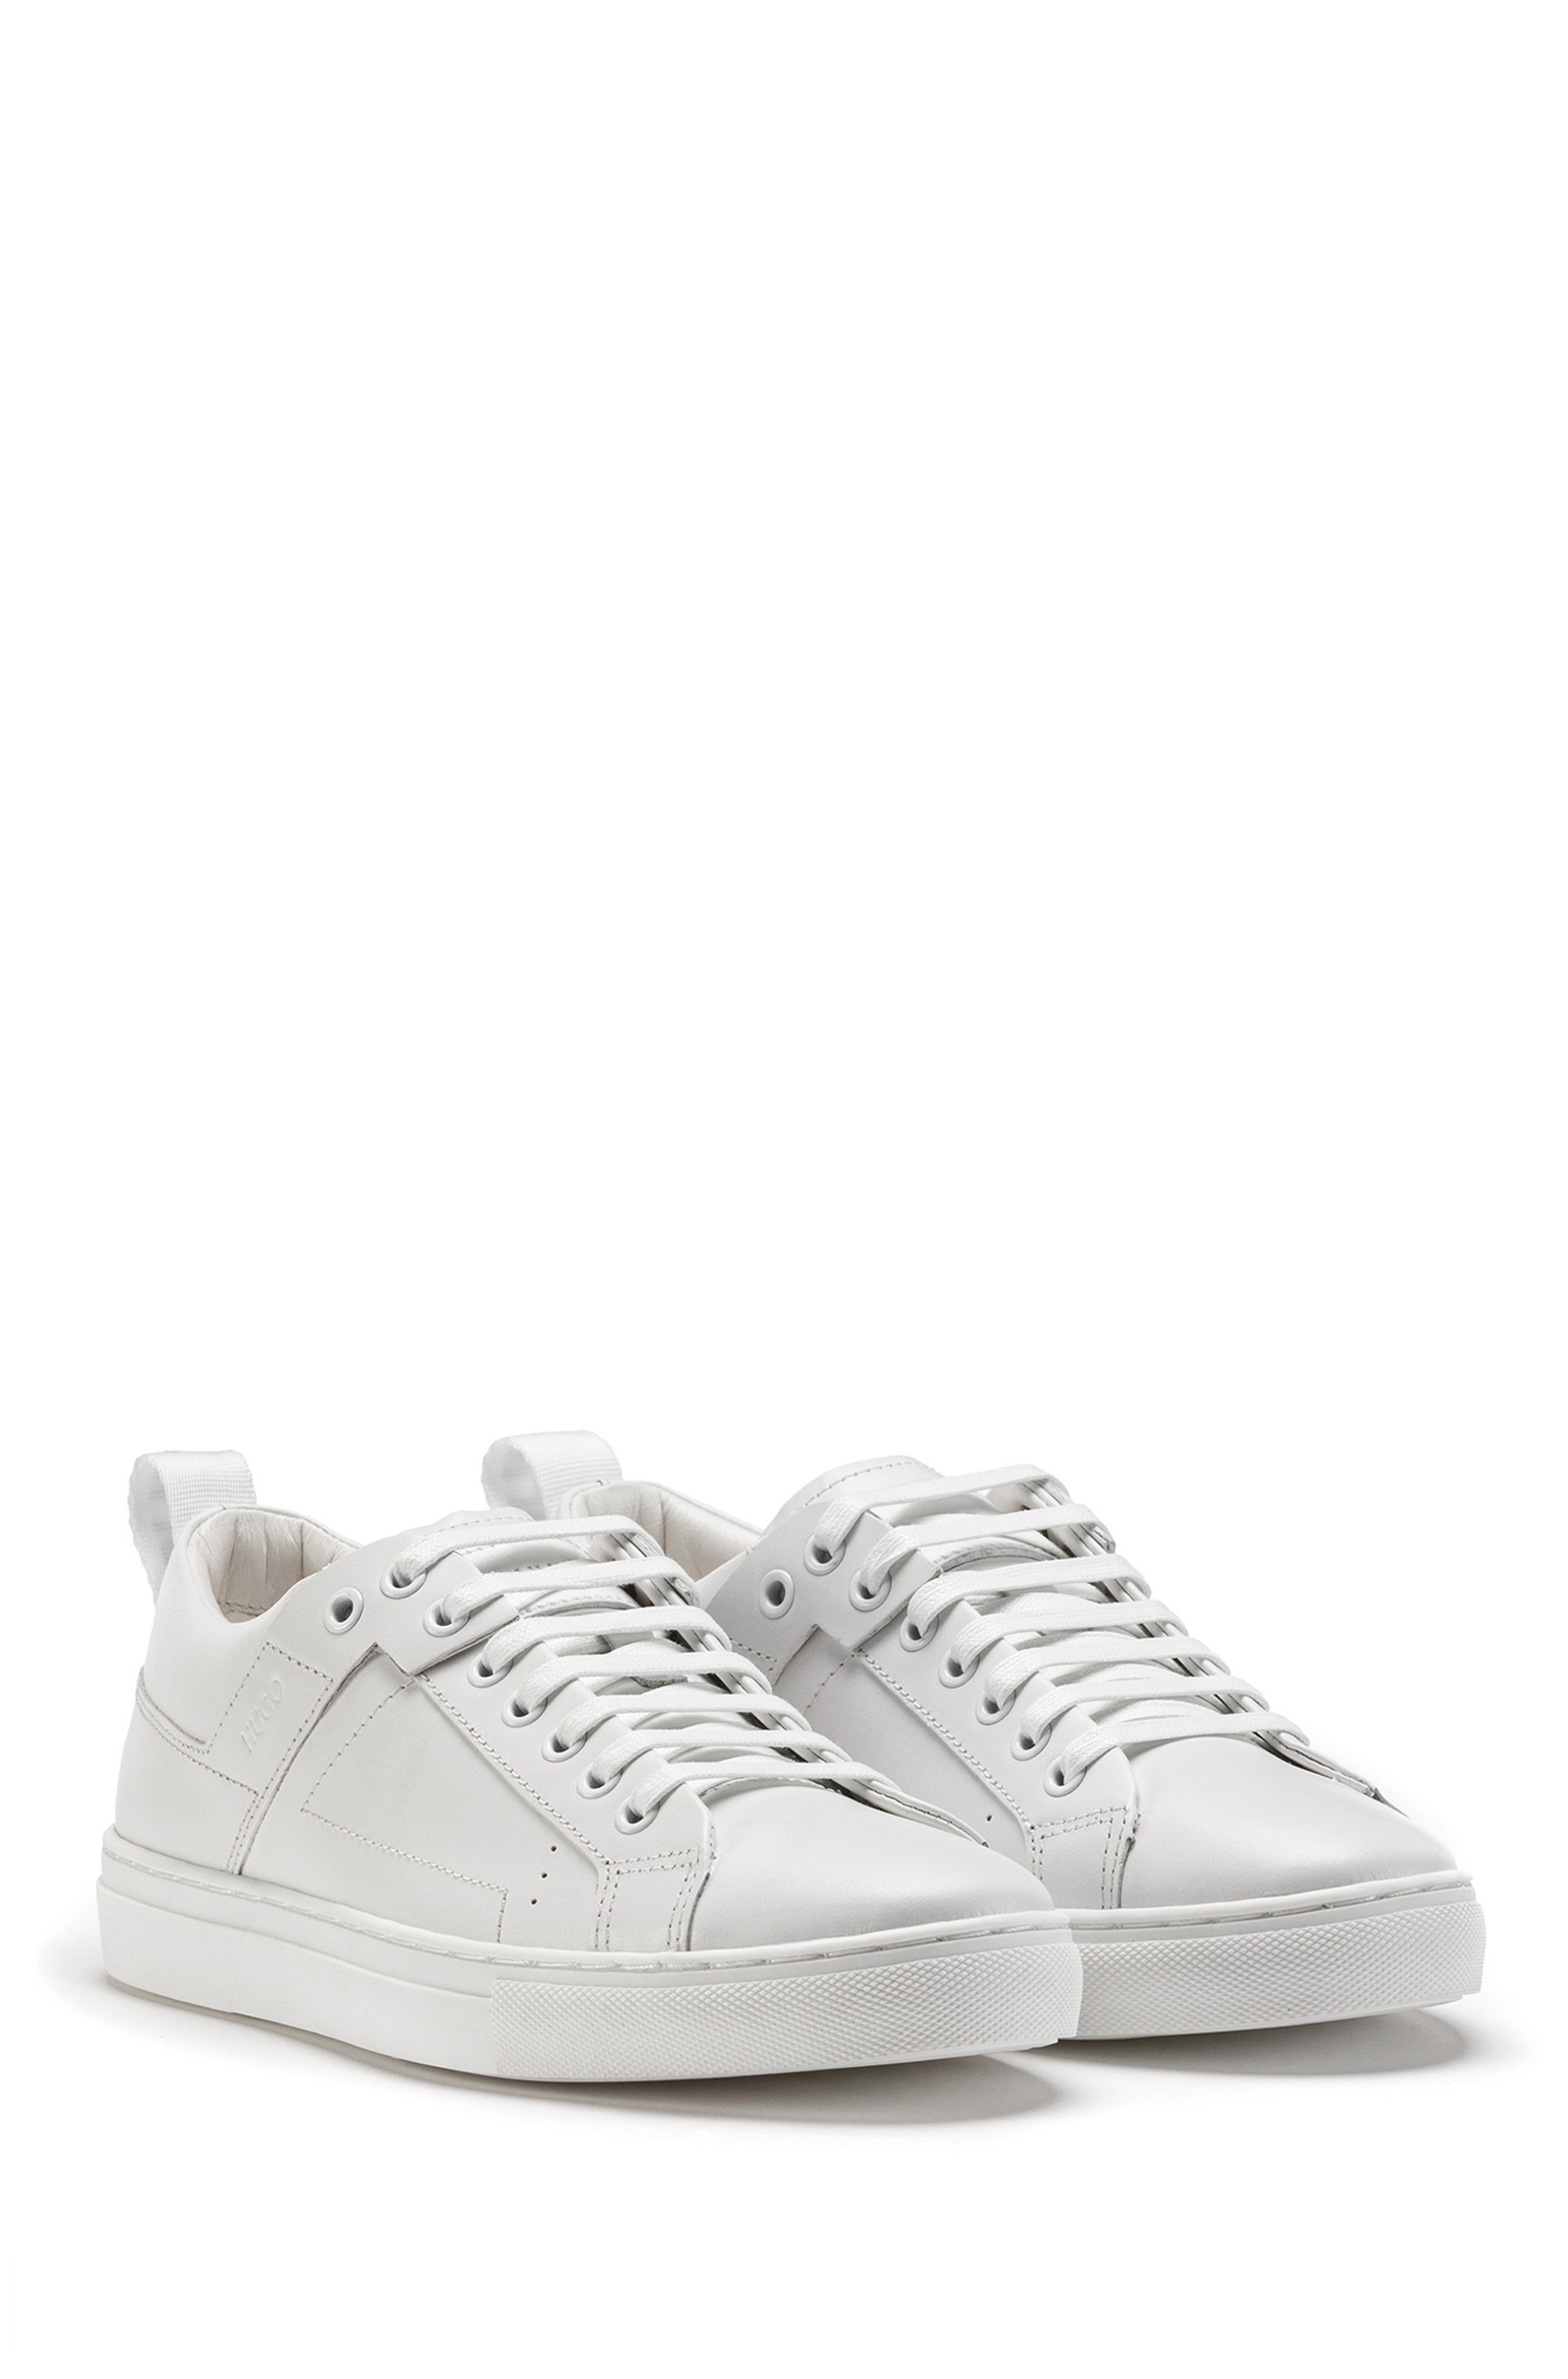 Lace-up trainers in leather with logo pull-loop